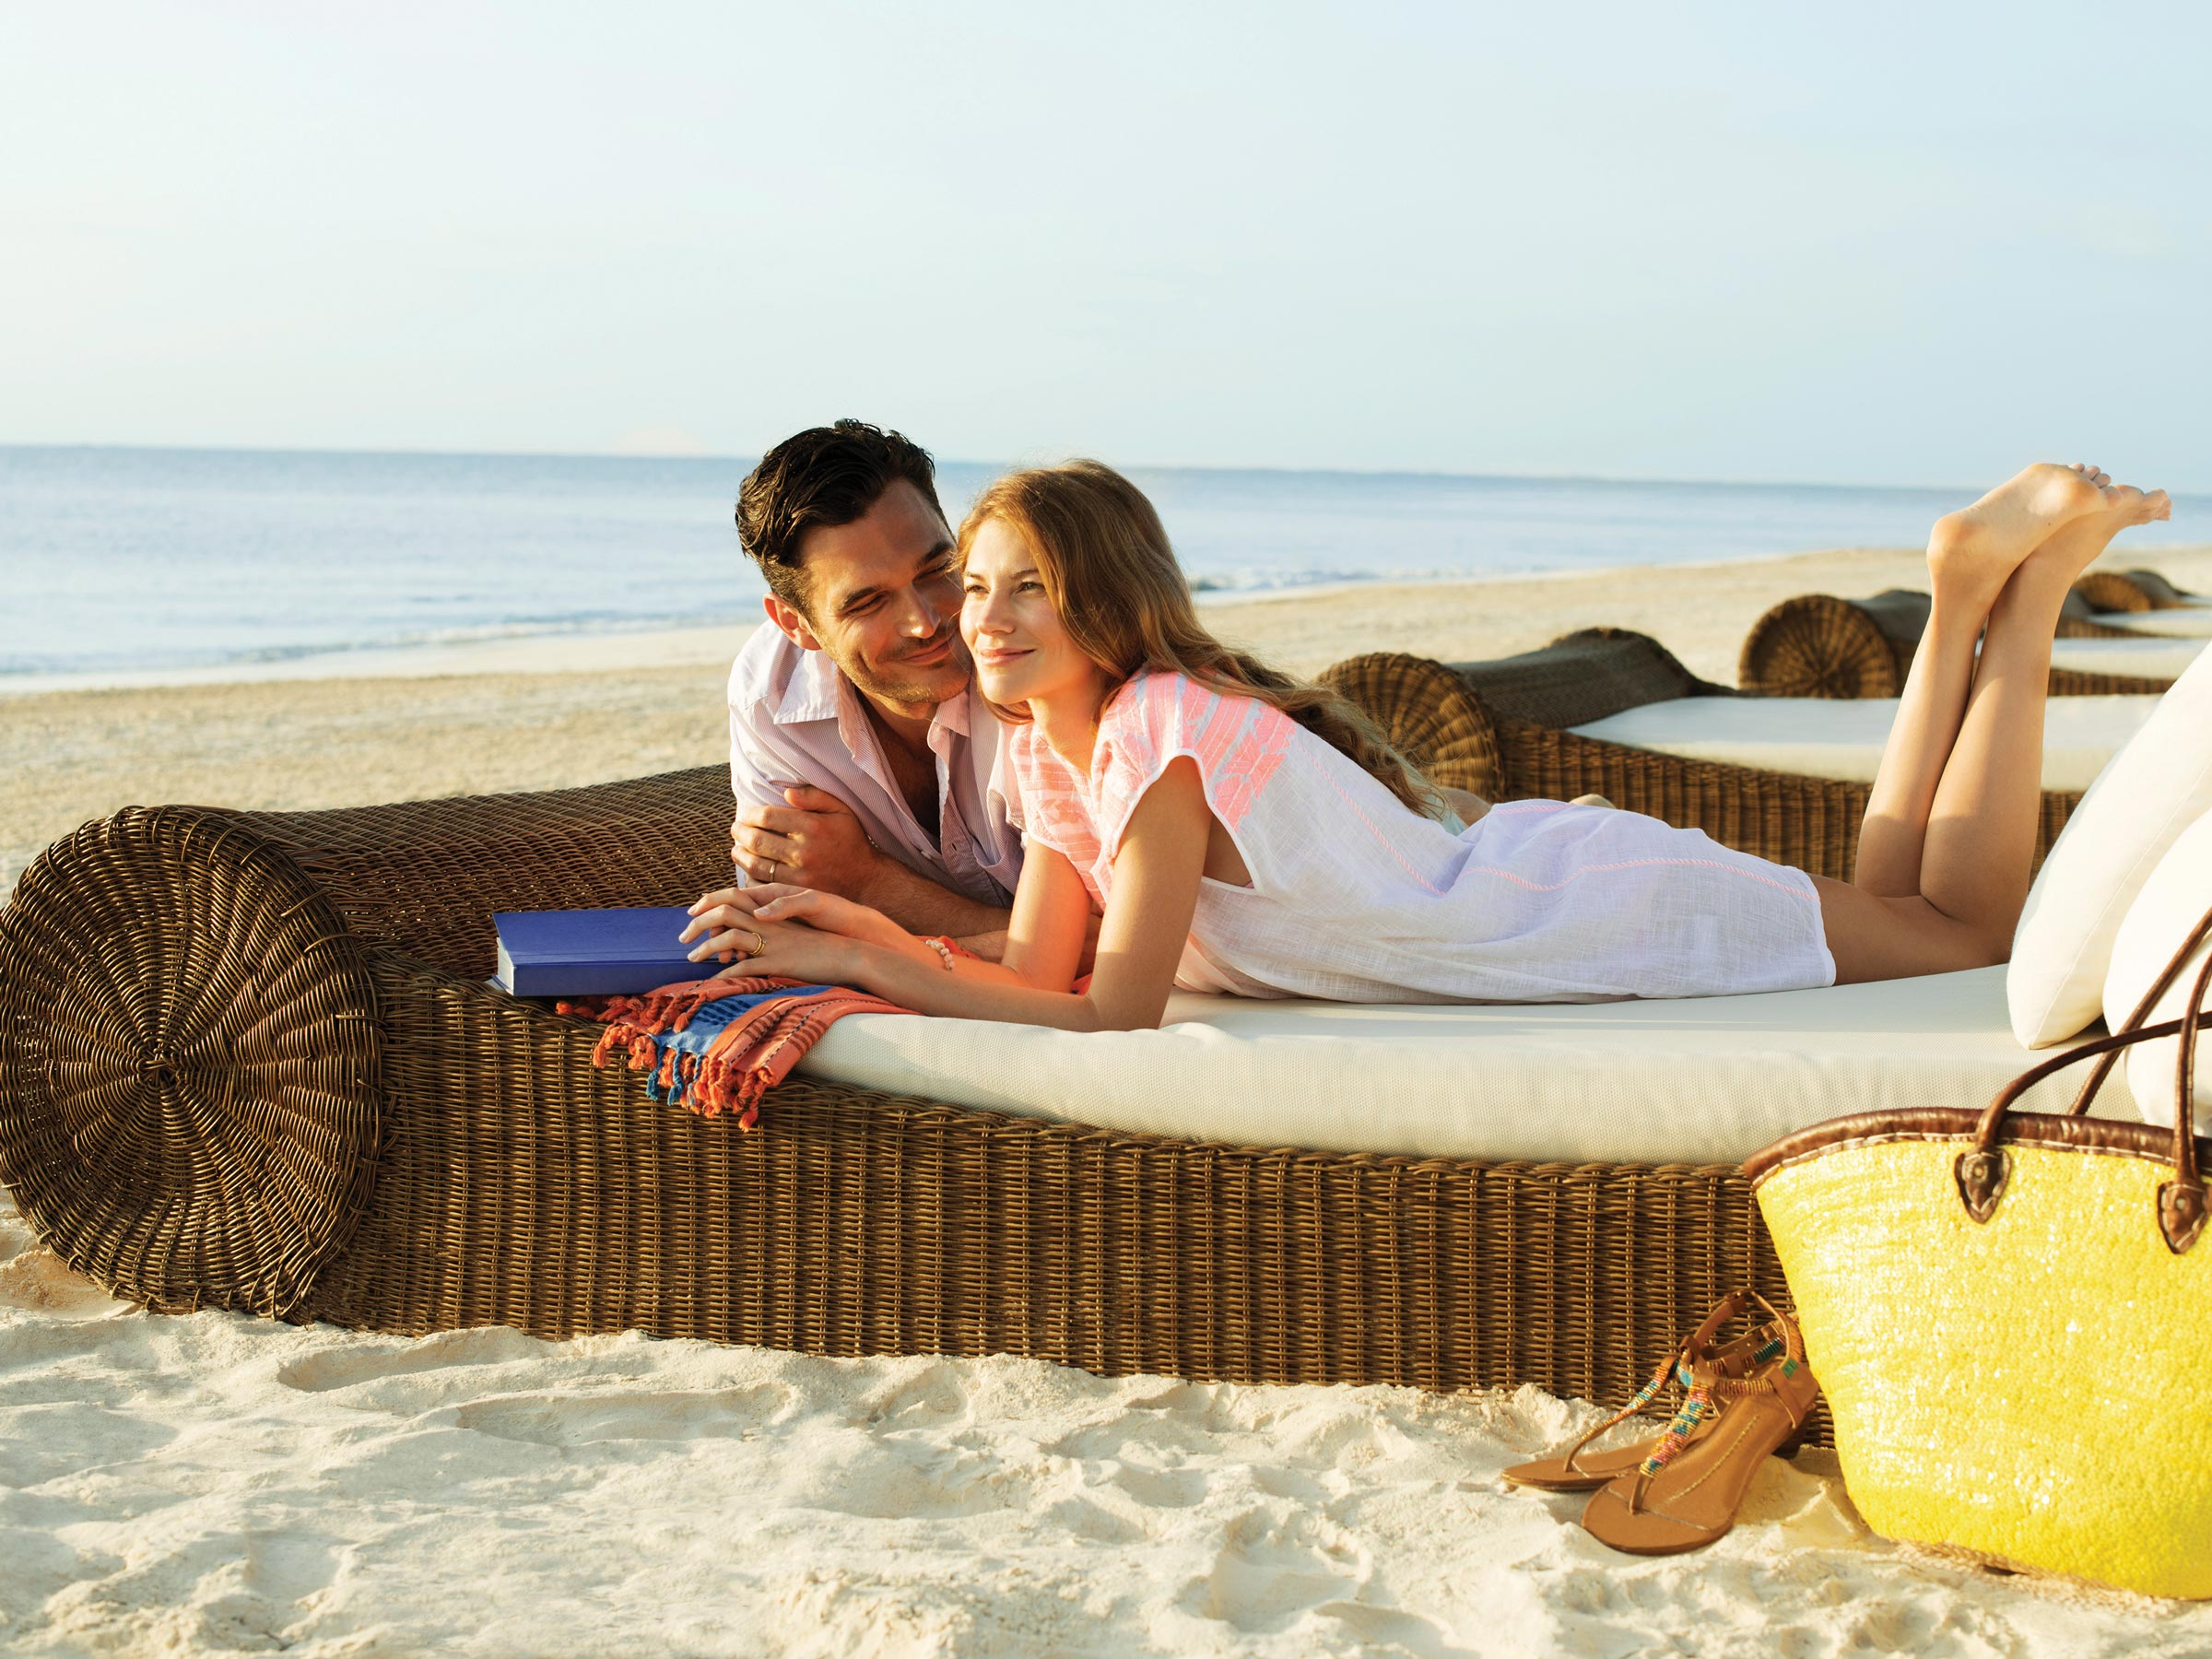 Experience a Romantic Adults Only Escape with Our Riviera Maya Honeymoon Package